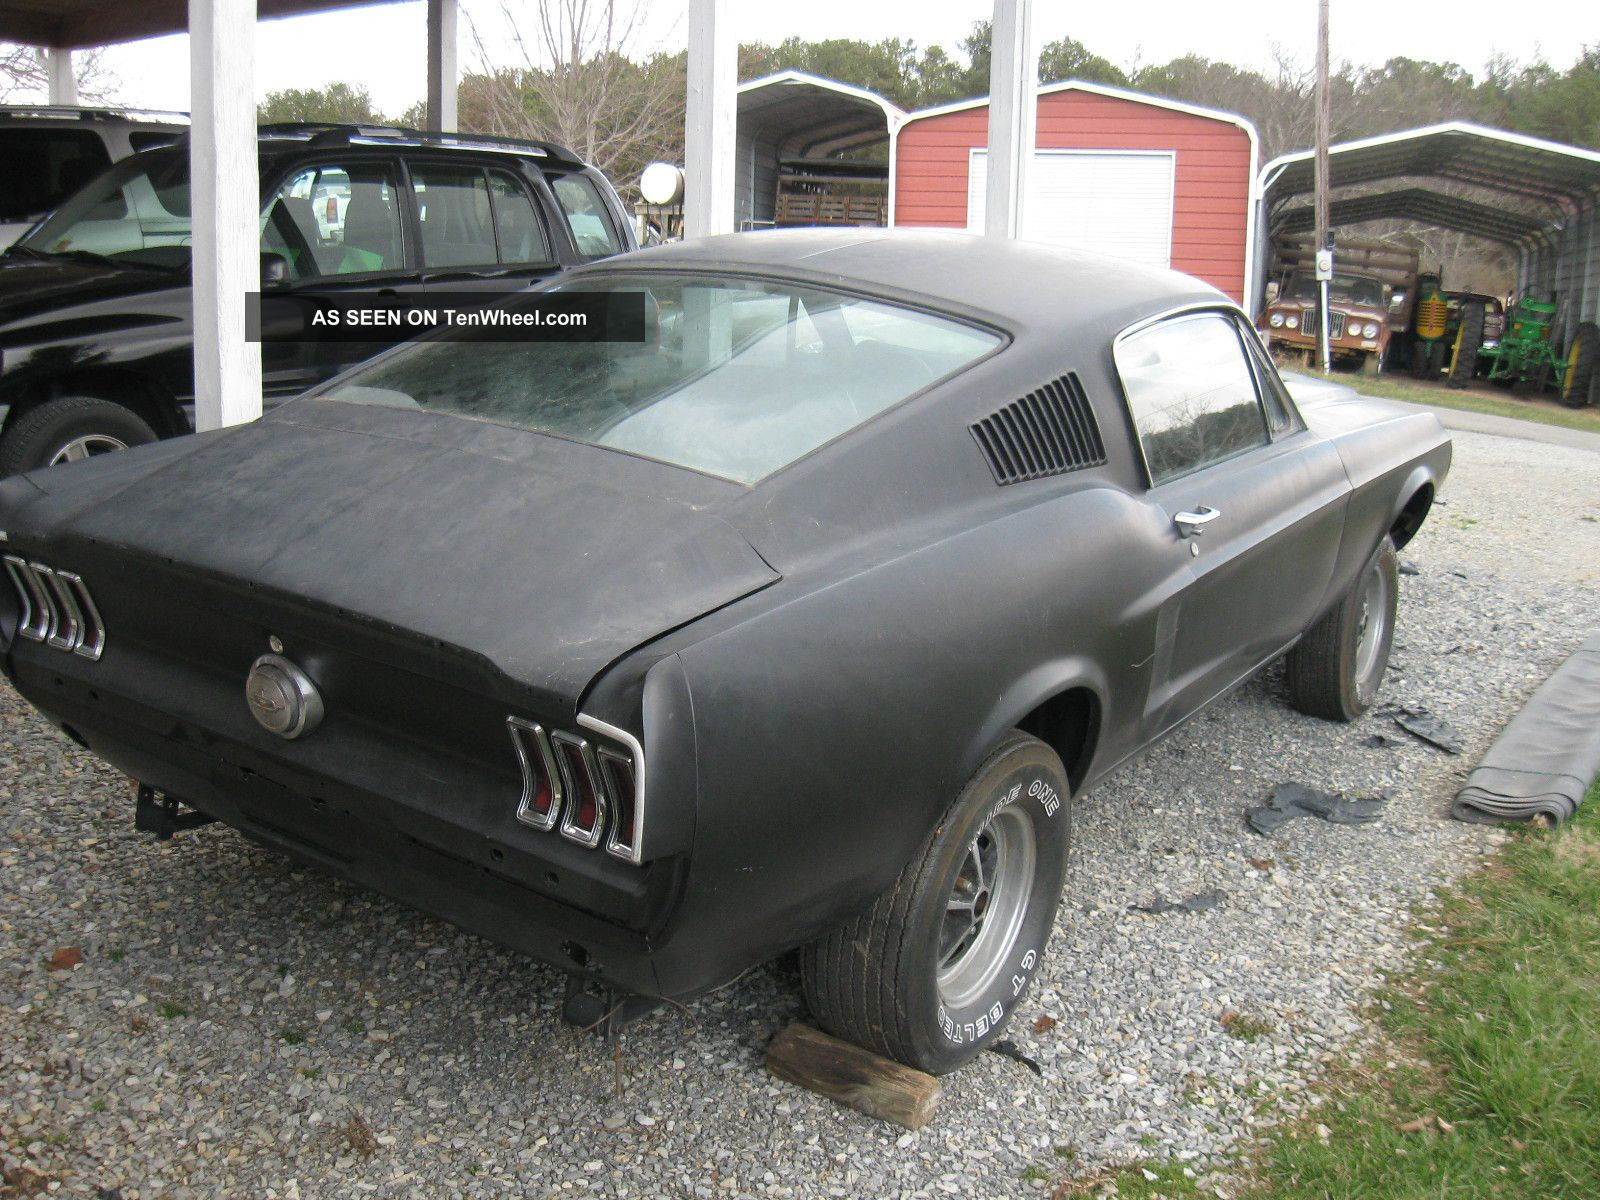 1968 Gt - 500 Shelby Fastback Mustang Clone Project 68 Mustang photo 1